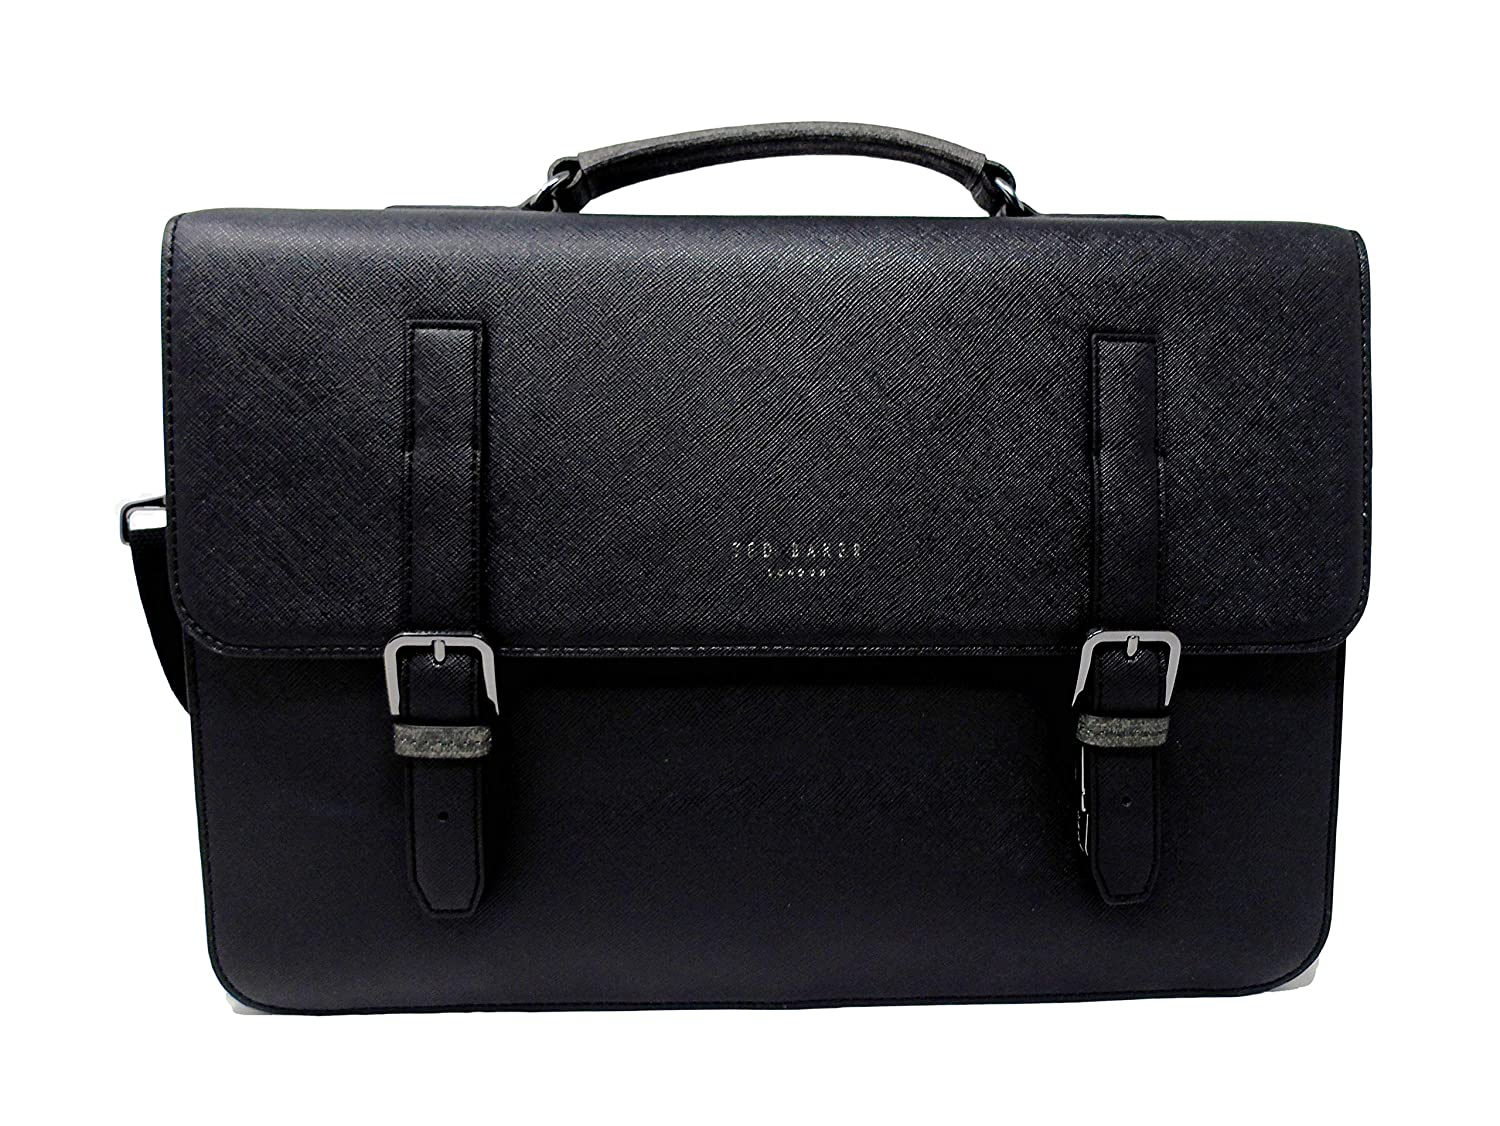 MacBook Air/Pro Fighwy Guinea Pigs Briefcase Handbag Case Cover for 13-15 inch Laptop Notebook